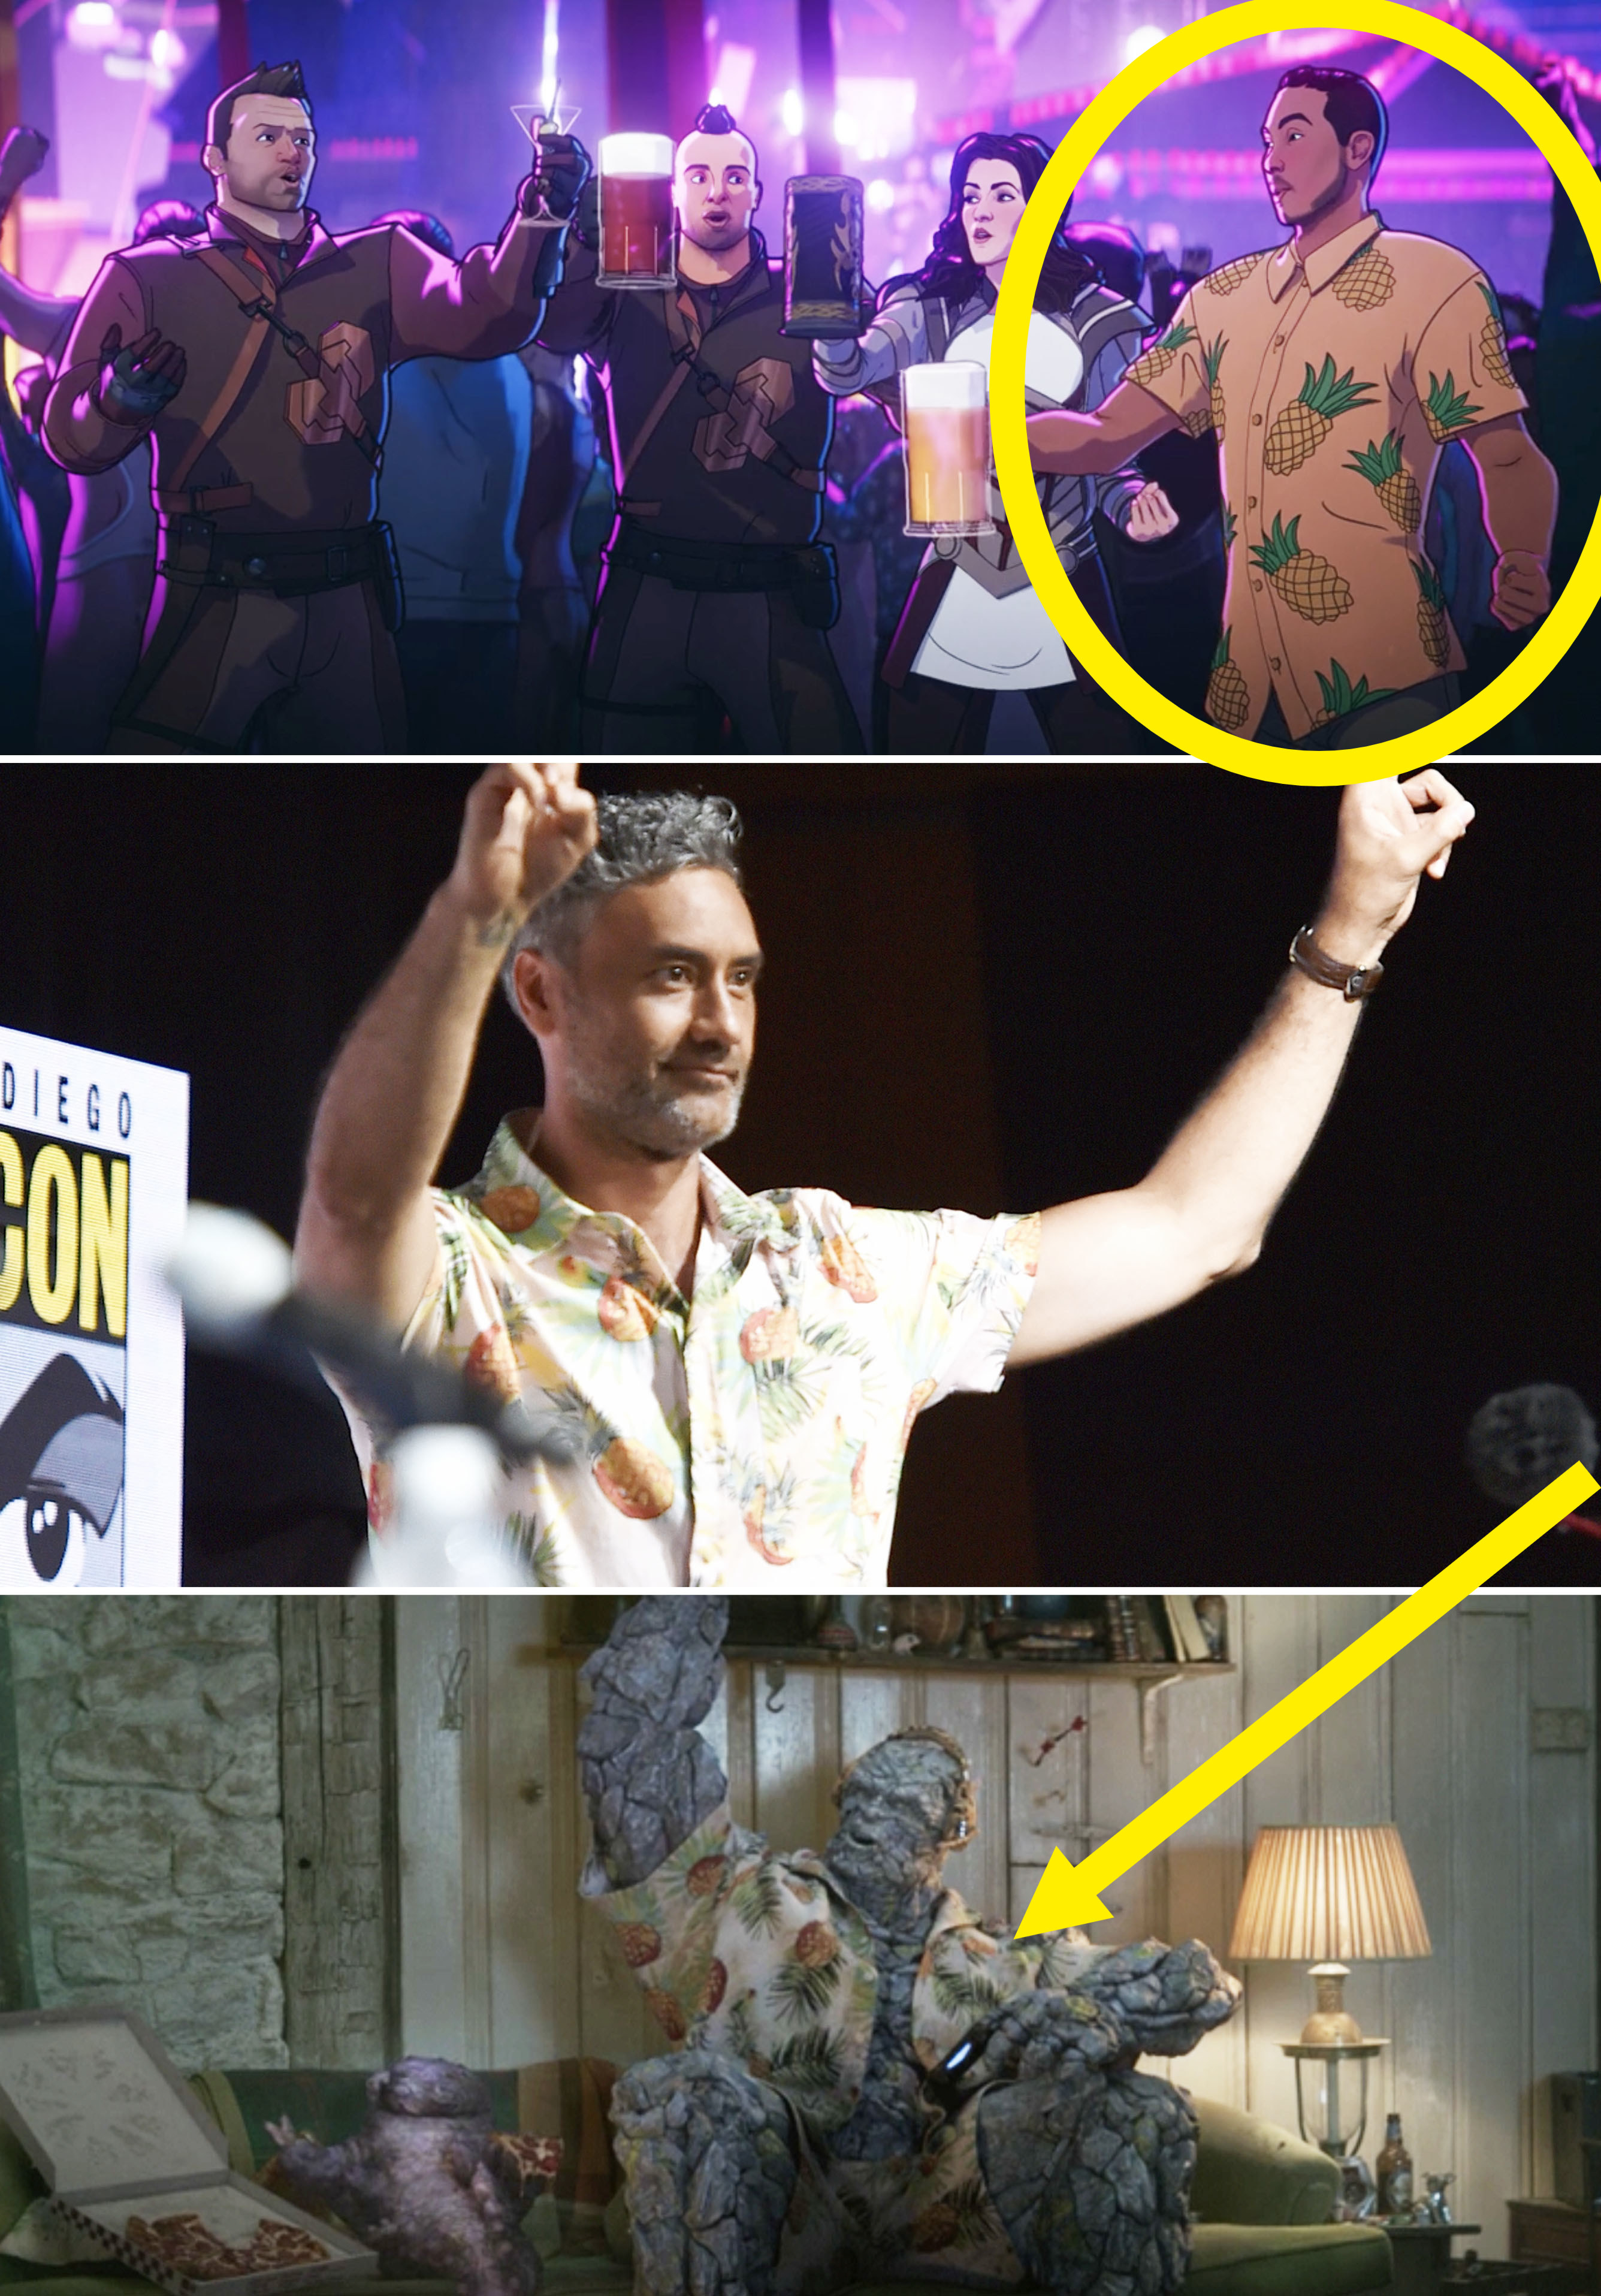 A guy at Thor's party in a pineapple shirt, Taika Waititi wearing one, vs Korg wearing one